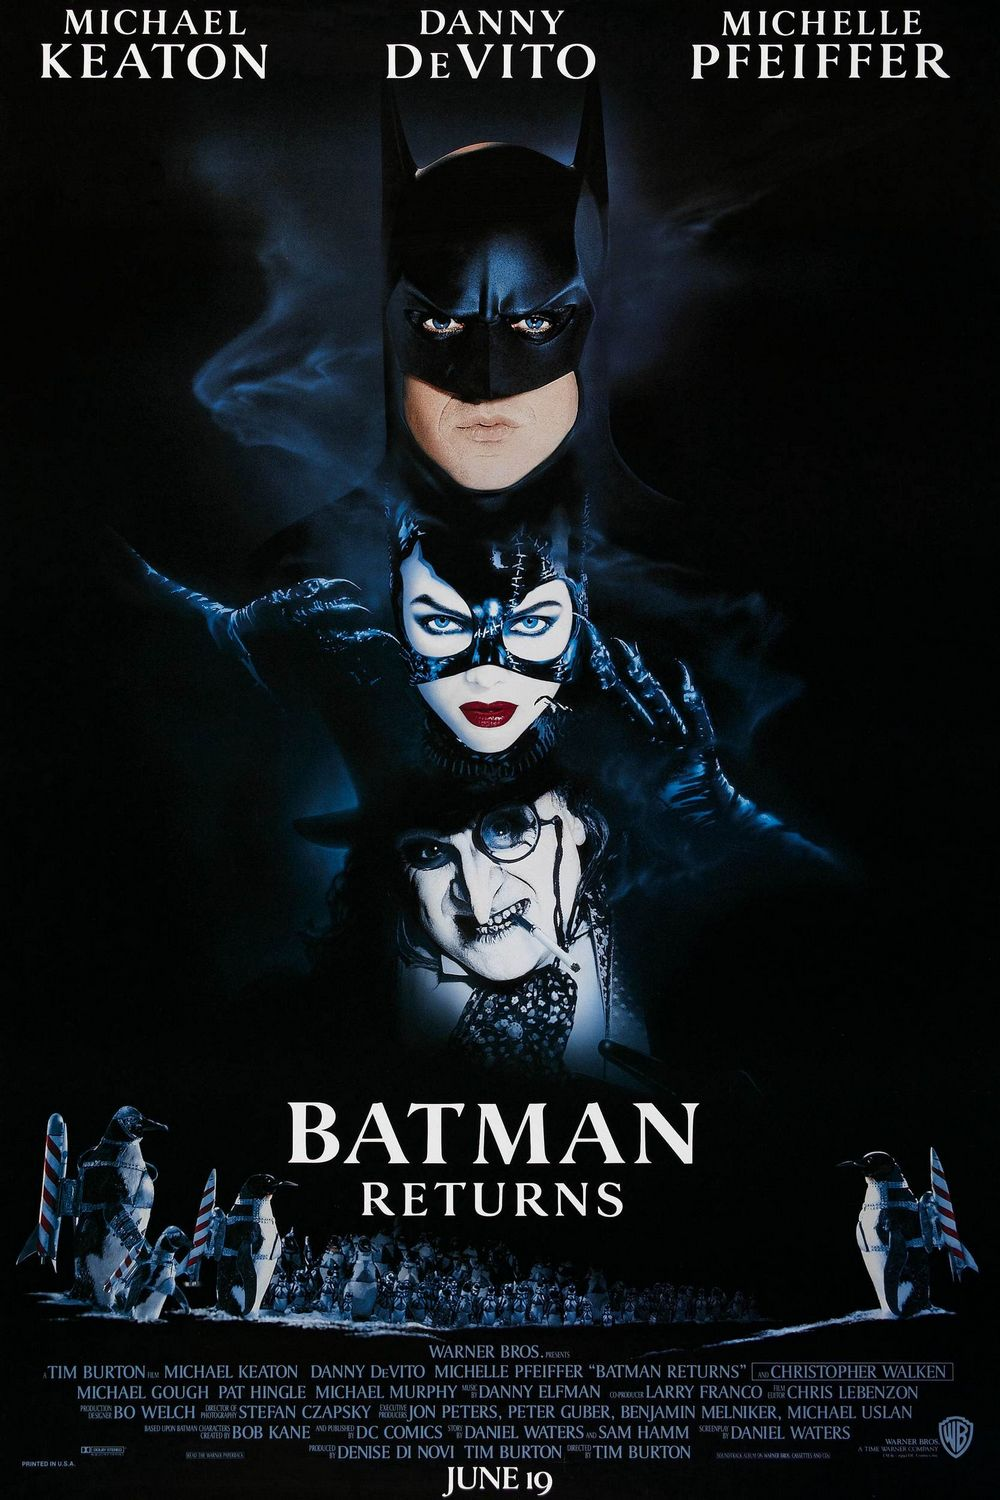 Jay reviews films superhero syndrome batman - Super batman movie ...